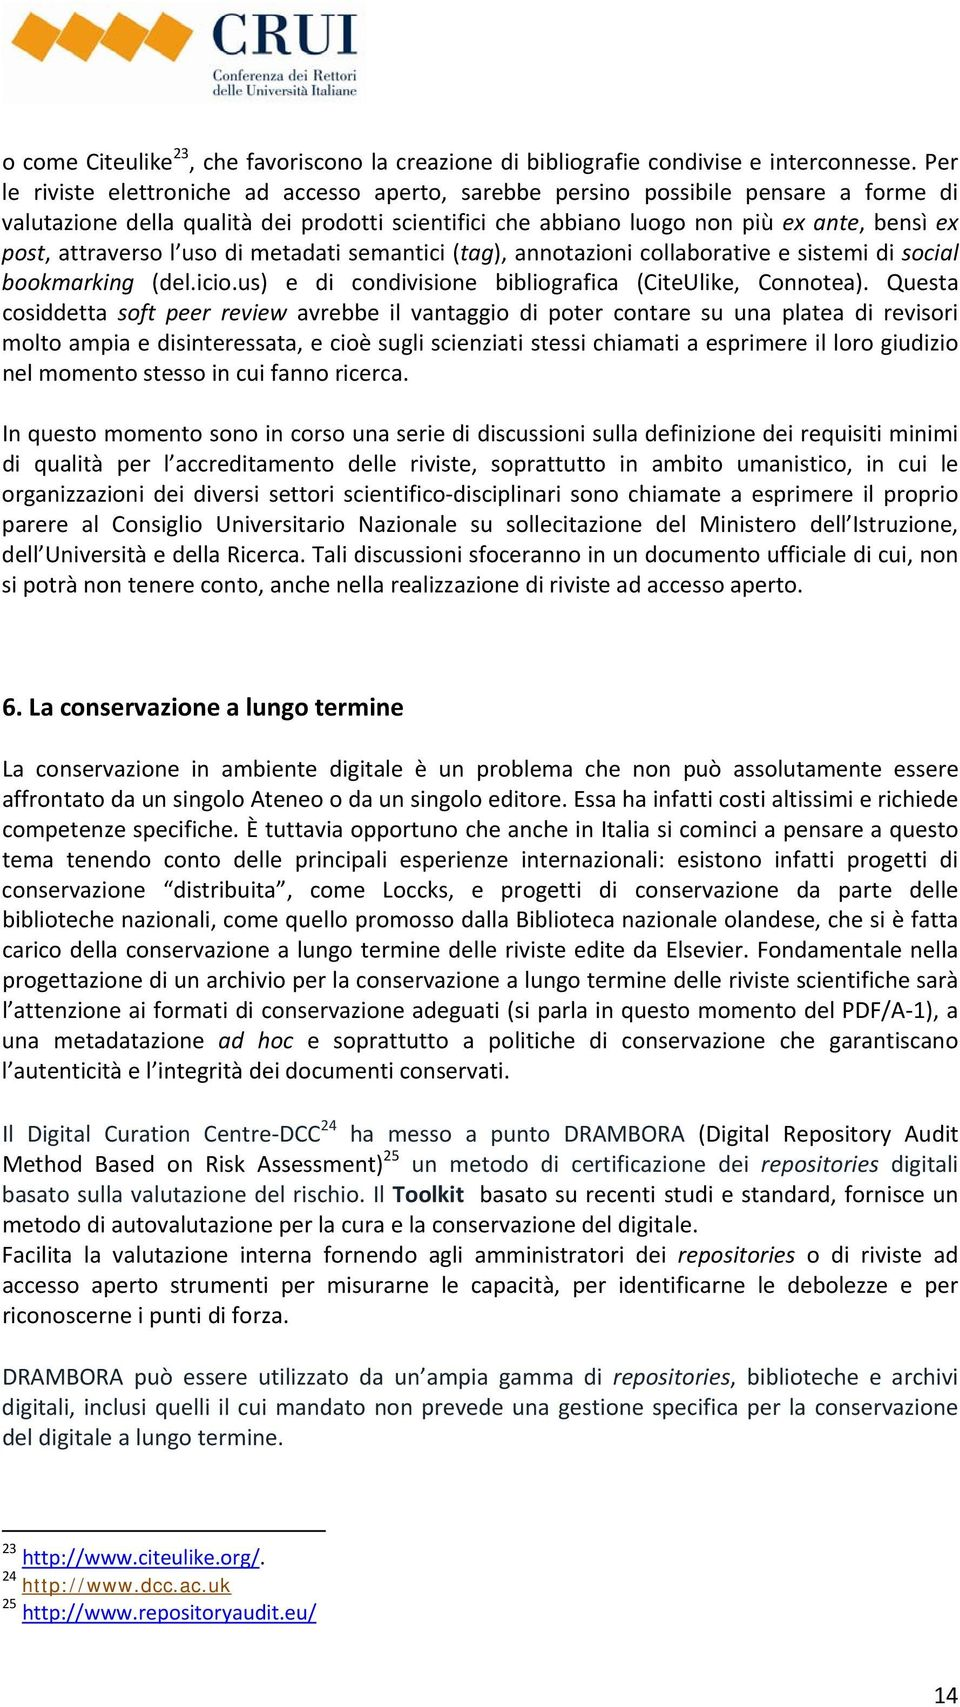 attraverso l uso di metadati semantici (tag), annotazioni collaborative e sistemi di social bookmarking (del.icio.us) e di condivisione bibliografica (CiteUlike, Connotea).